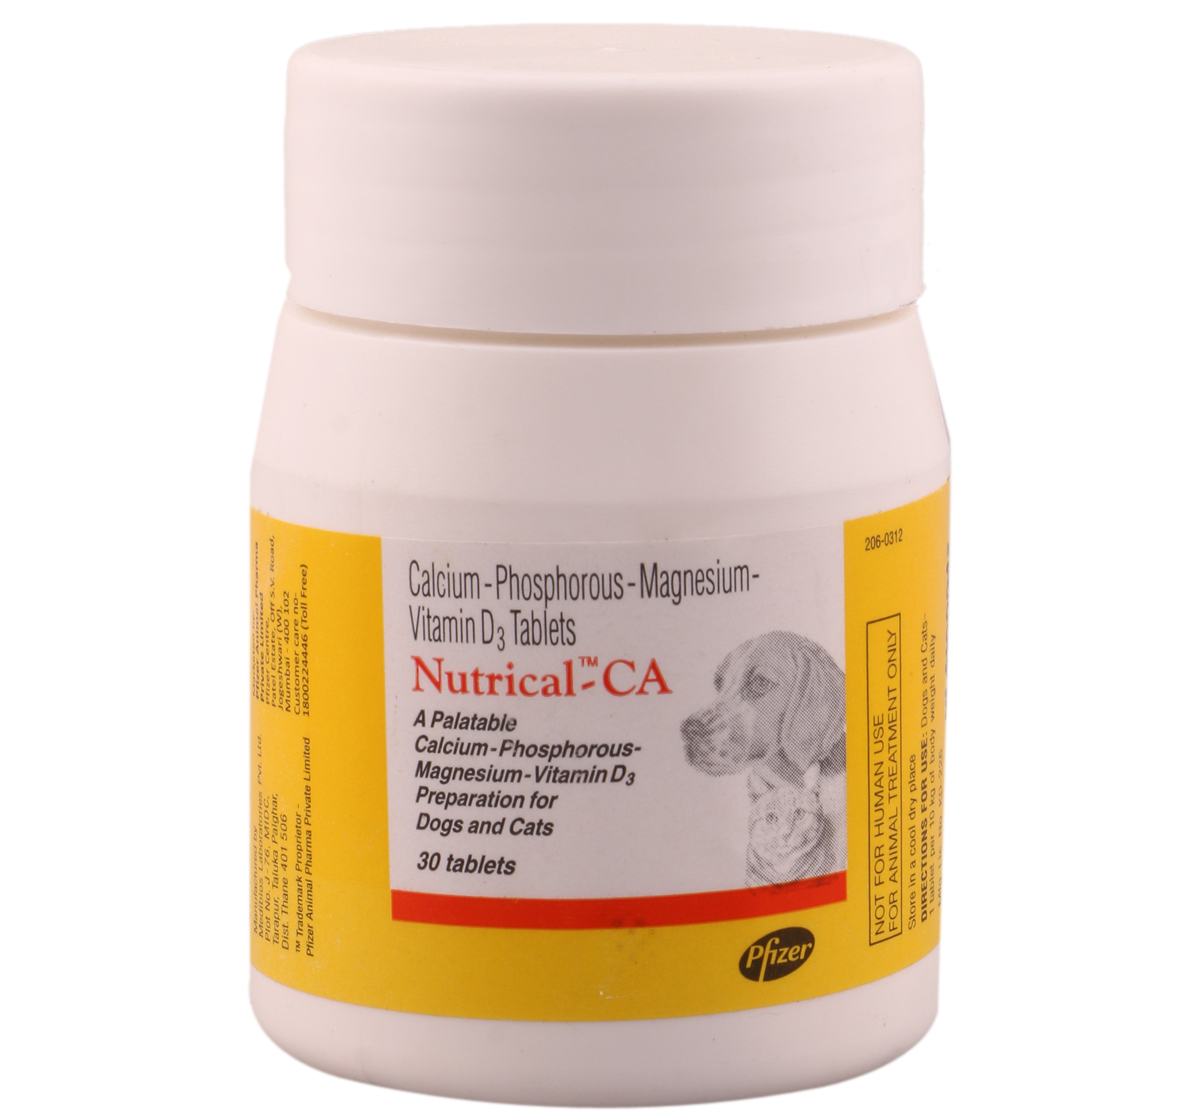 Pfizer Nutrical - CA Calcium Supplement - 30 Tablet